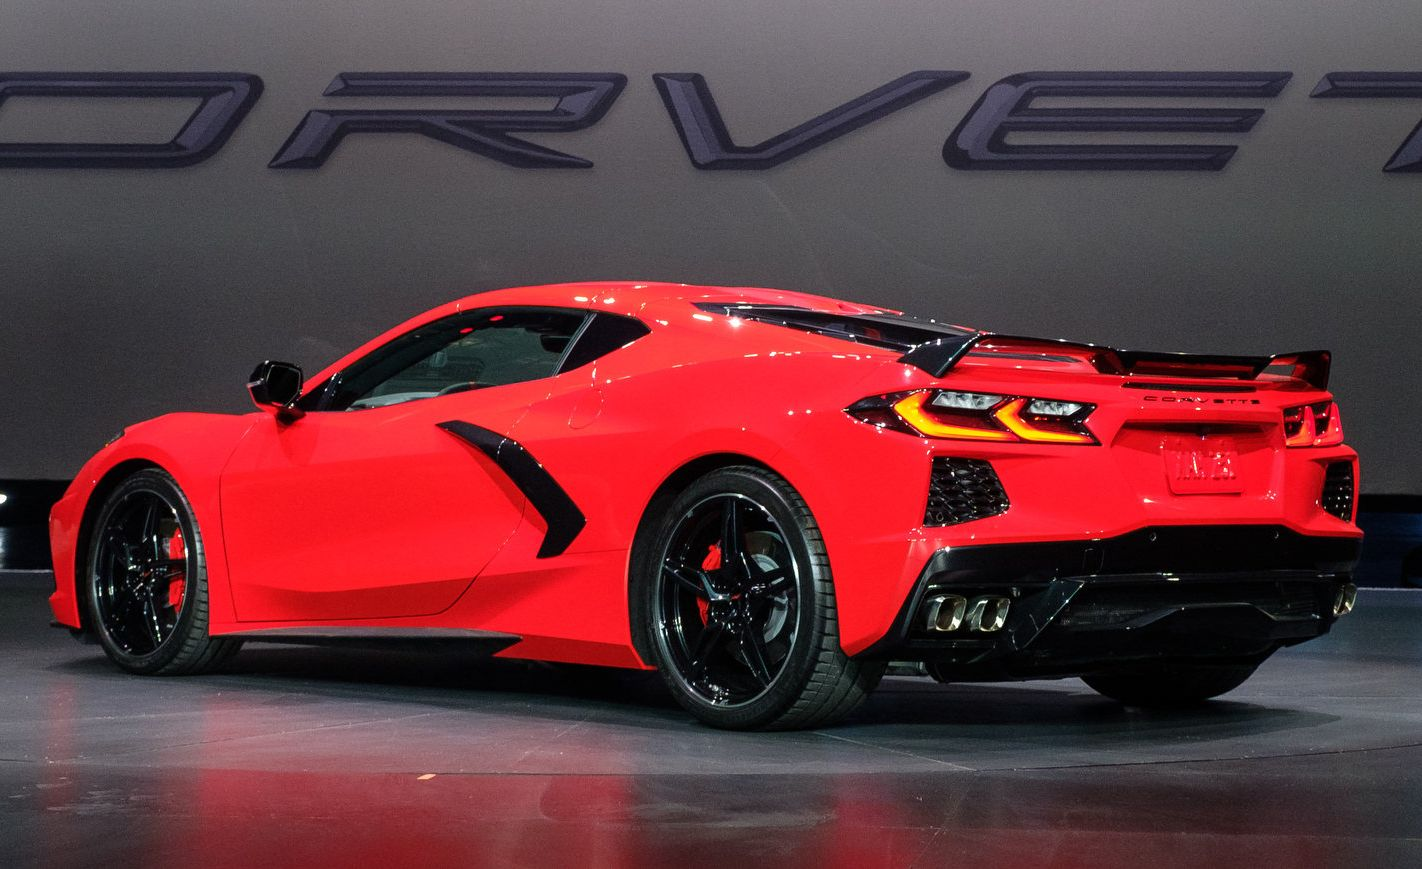 I Still Have Questions About The C8 Corvette But It Could